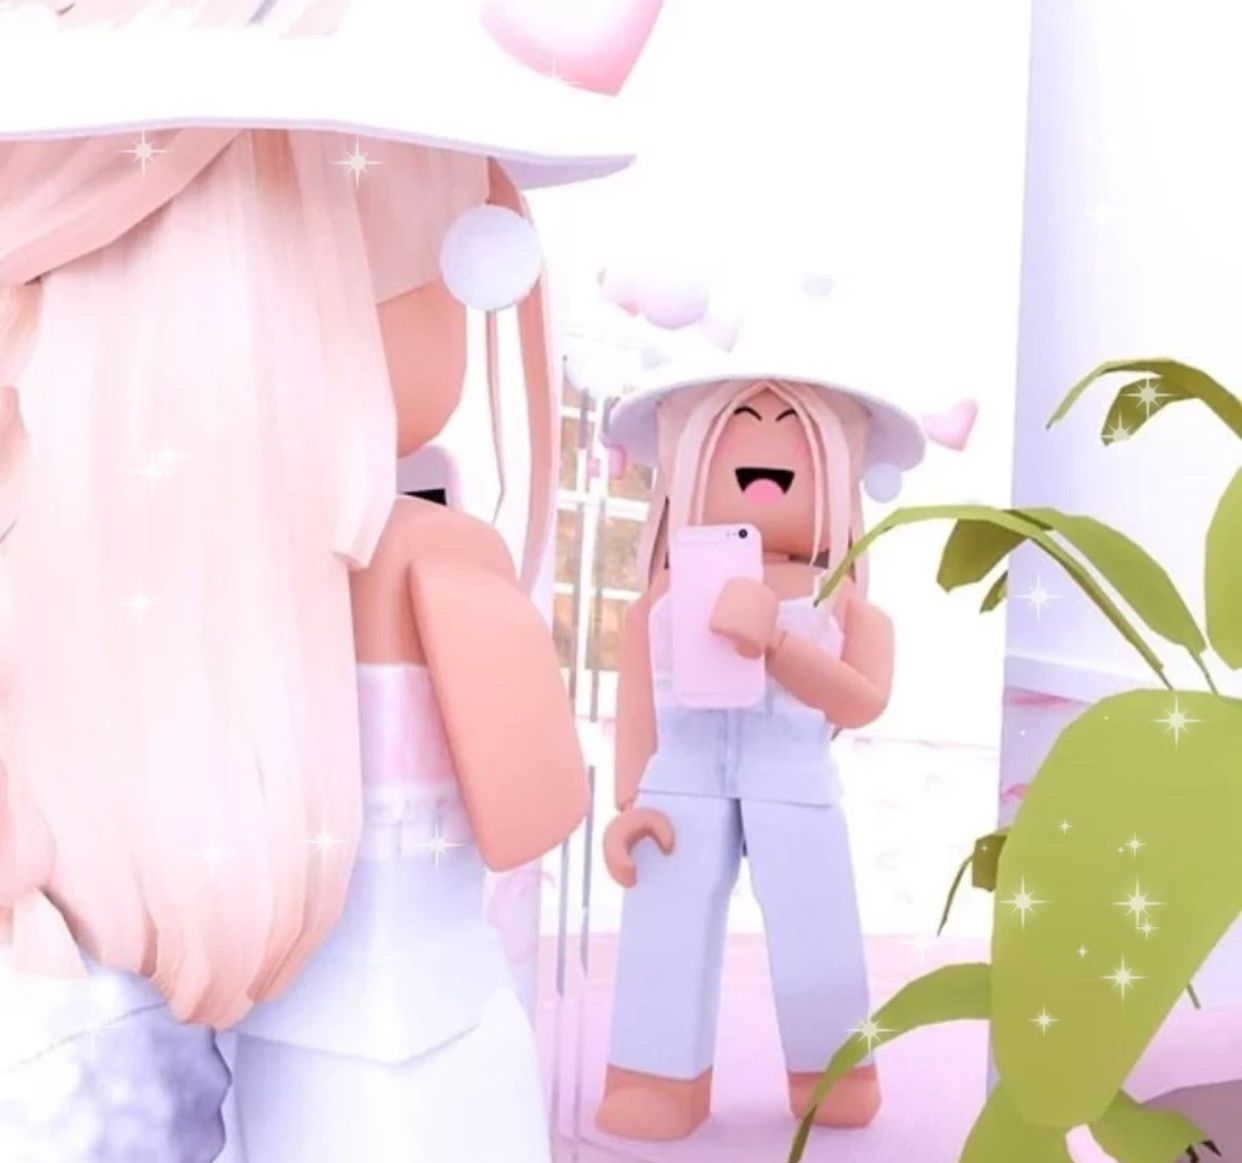 Pin By Anekcrafts On Aesthetic Roblox Roblox Pictures Cute Tumblr Wallpaper Roblox Animation